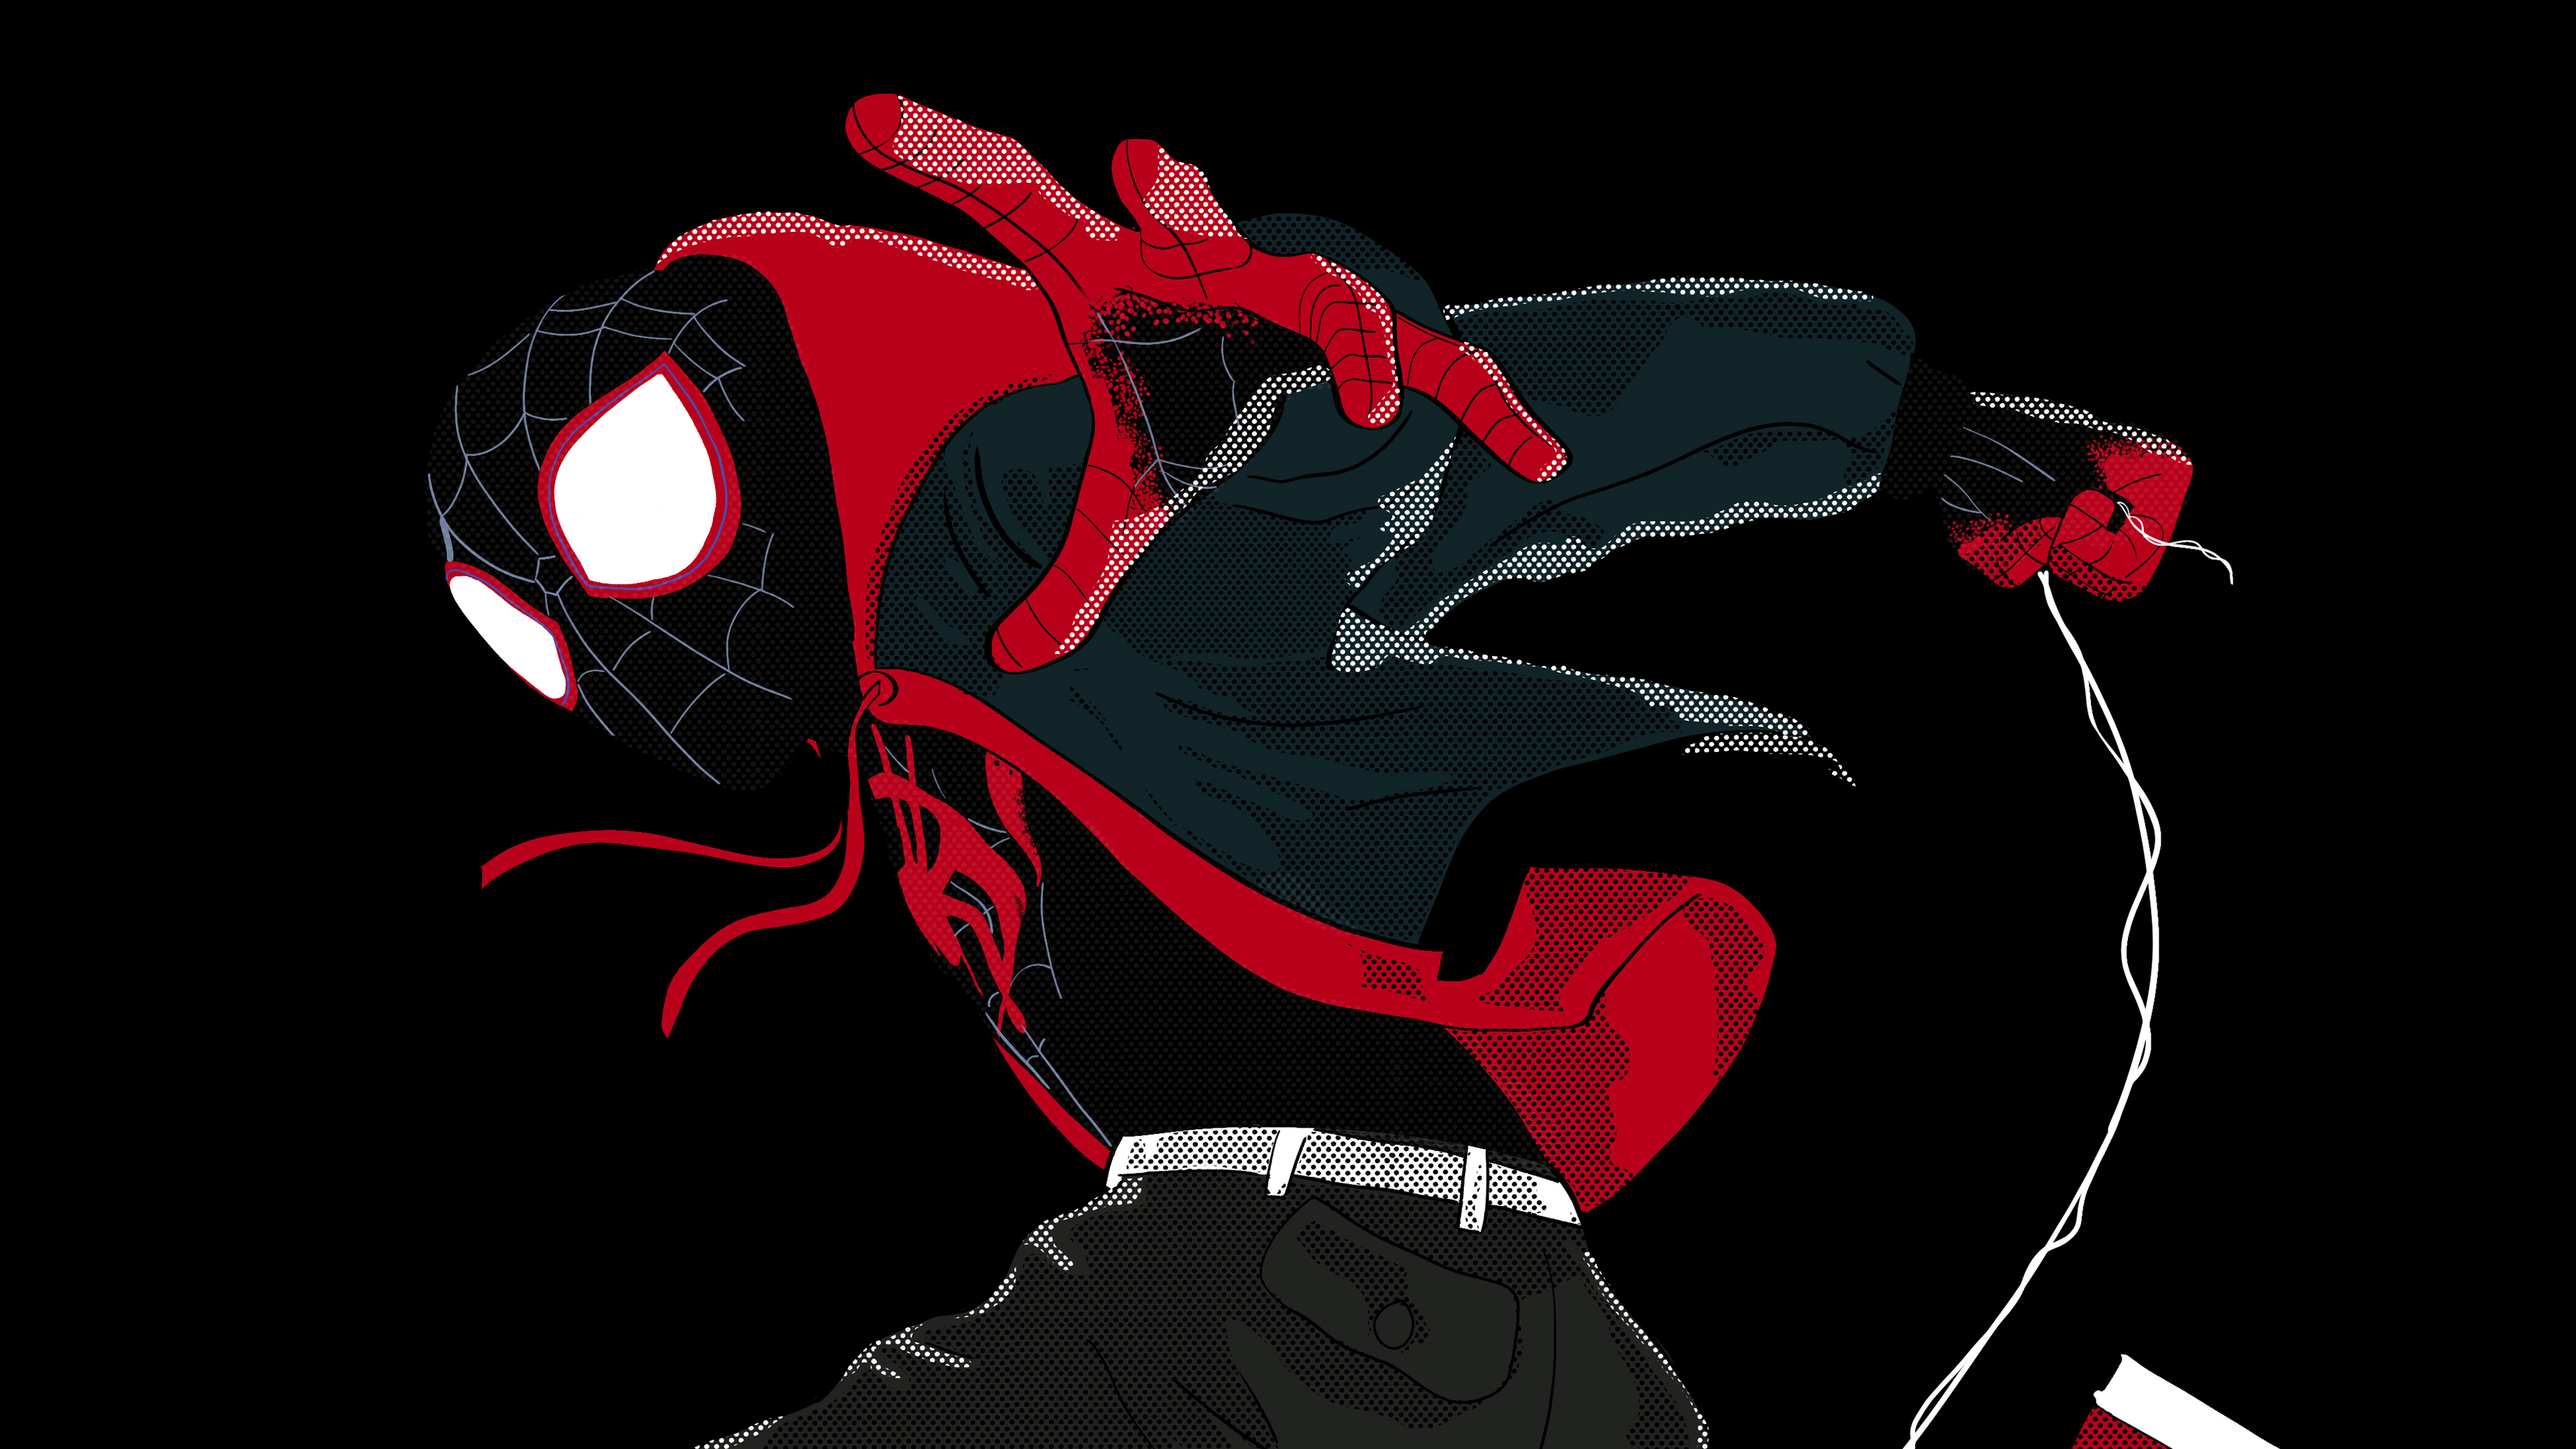 spiderman into the spider verse graphic design 4k 1545588498 - SpiderMan Into The Spider Verse Graphic Design 4k - superheroes wallpapers, spiderman into the spider verse wallpapers, hd-wallpapers, digital art wallpapers, behance wallpapers, artwork wallpapers, artist wallpapers, 4k-wallpapers